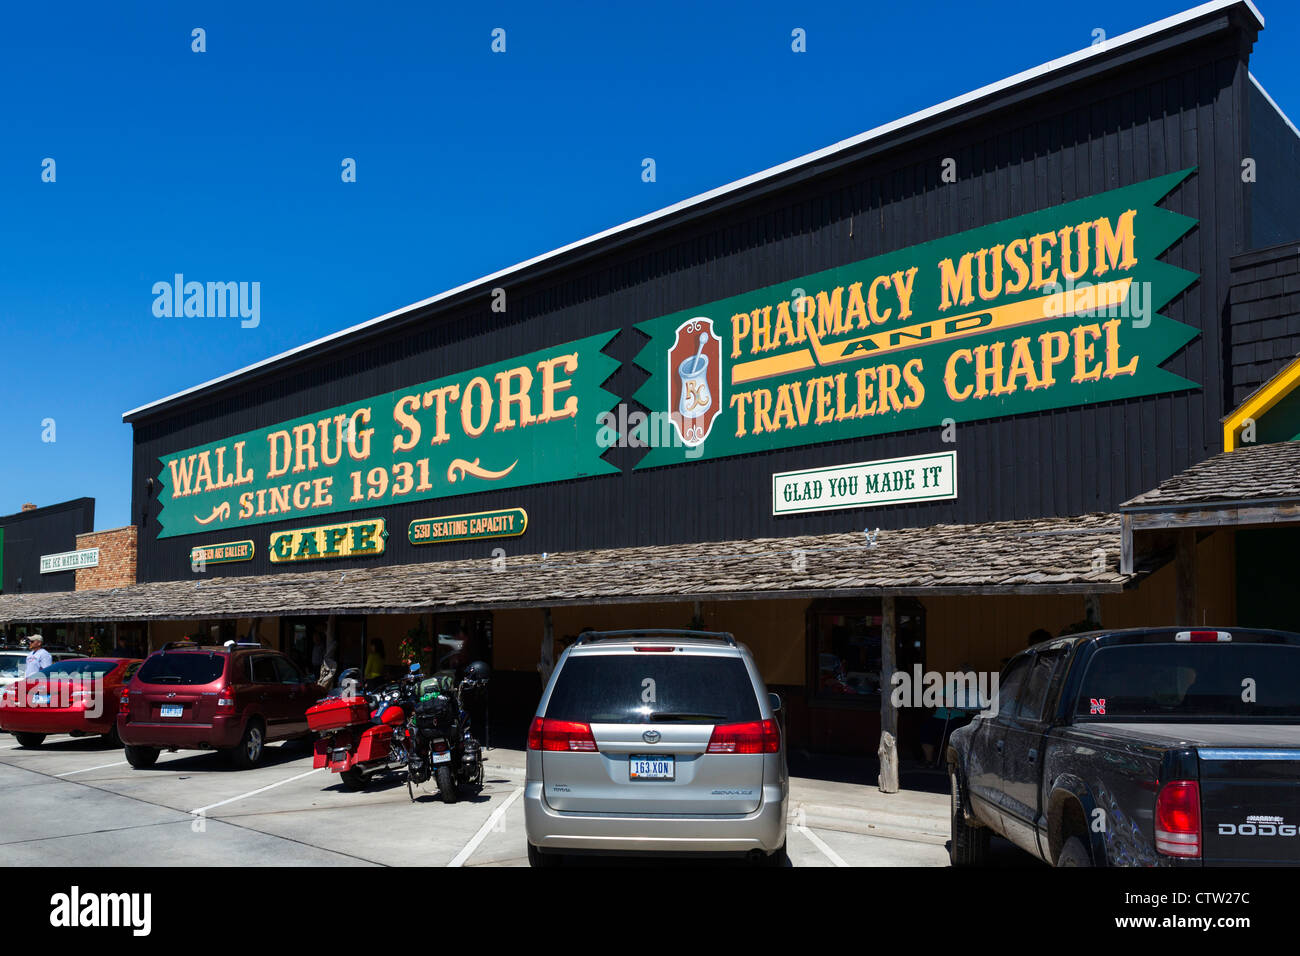 The famous Wall Drug Store in Wall, South Dakota, USA - Stock Image